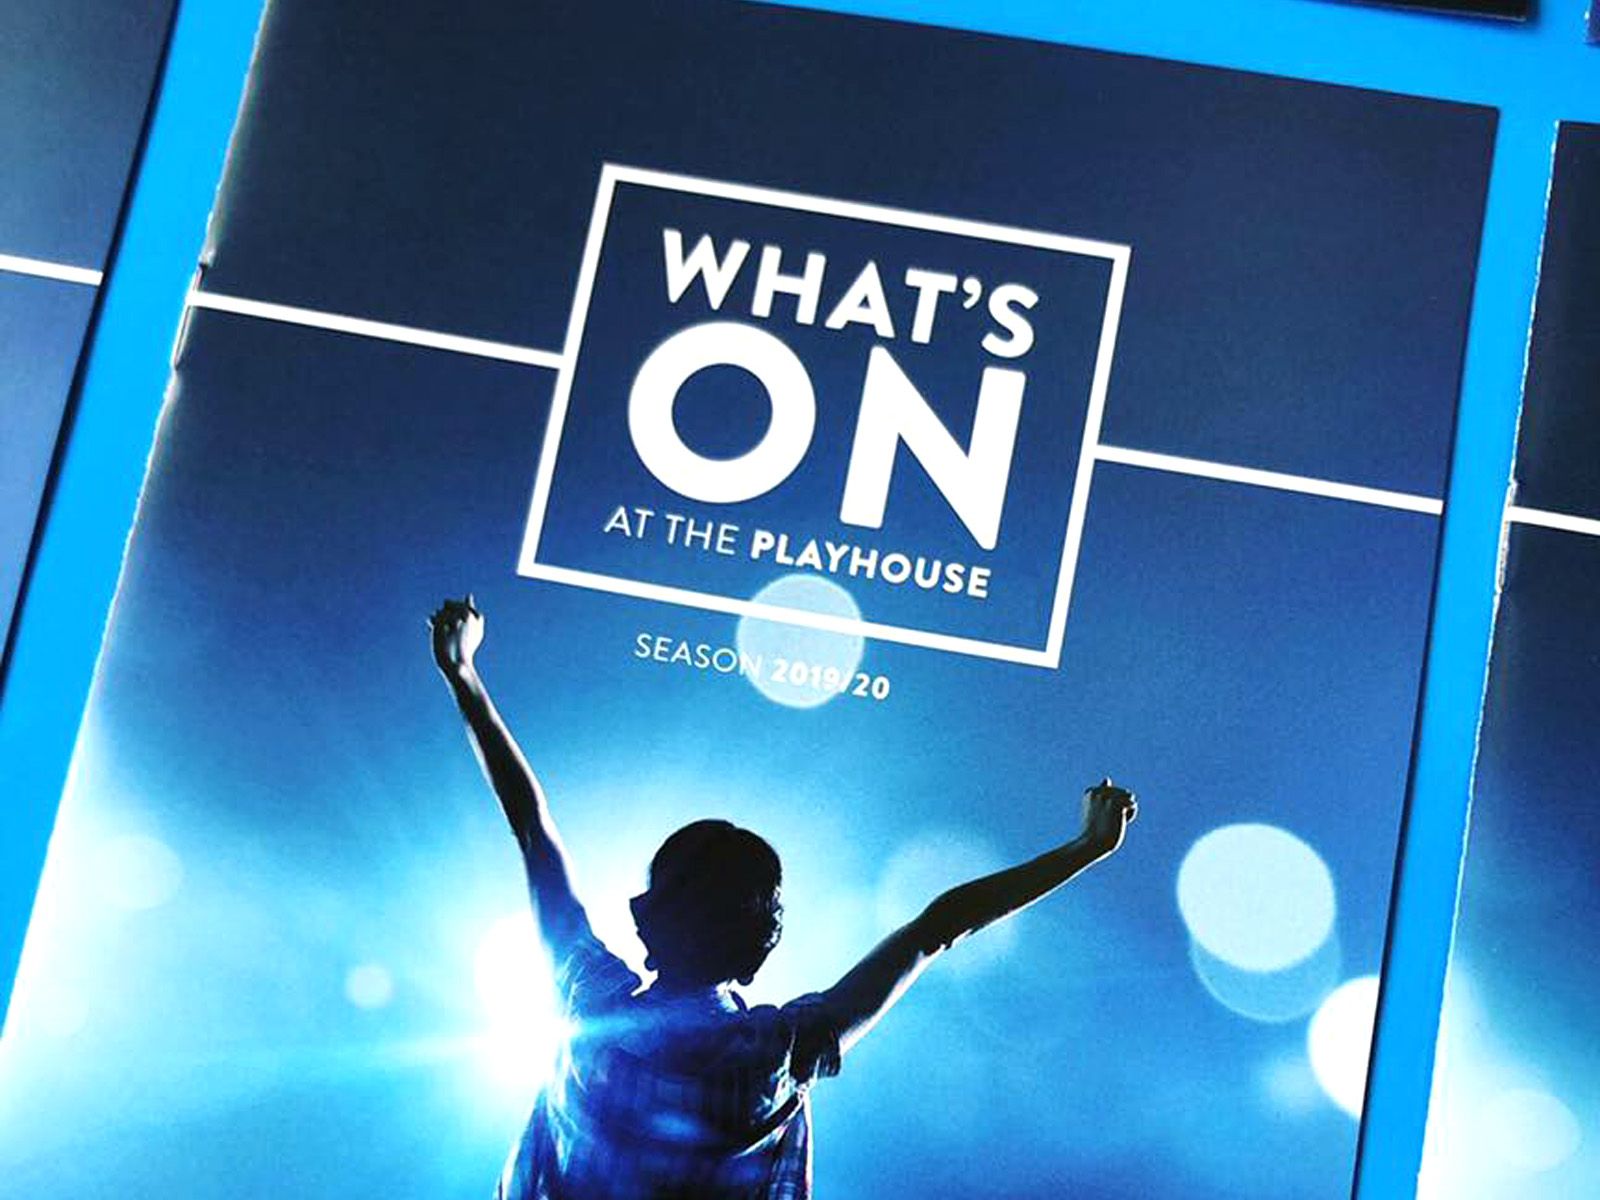 Preston Playhouse